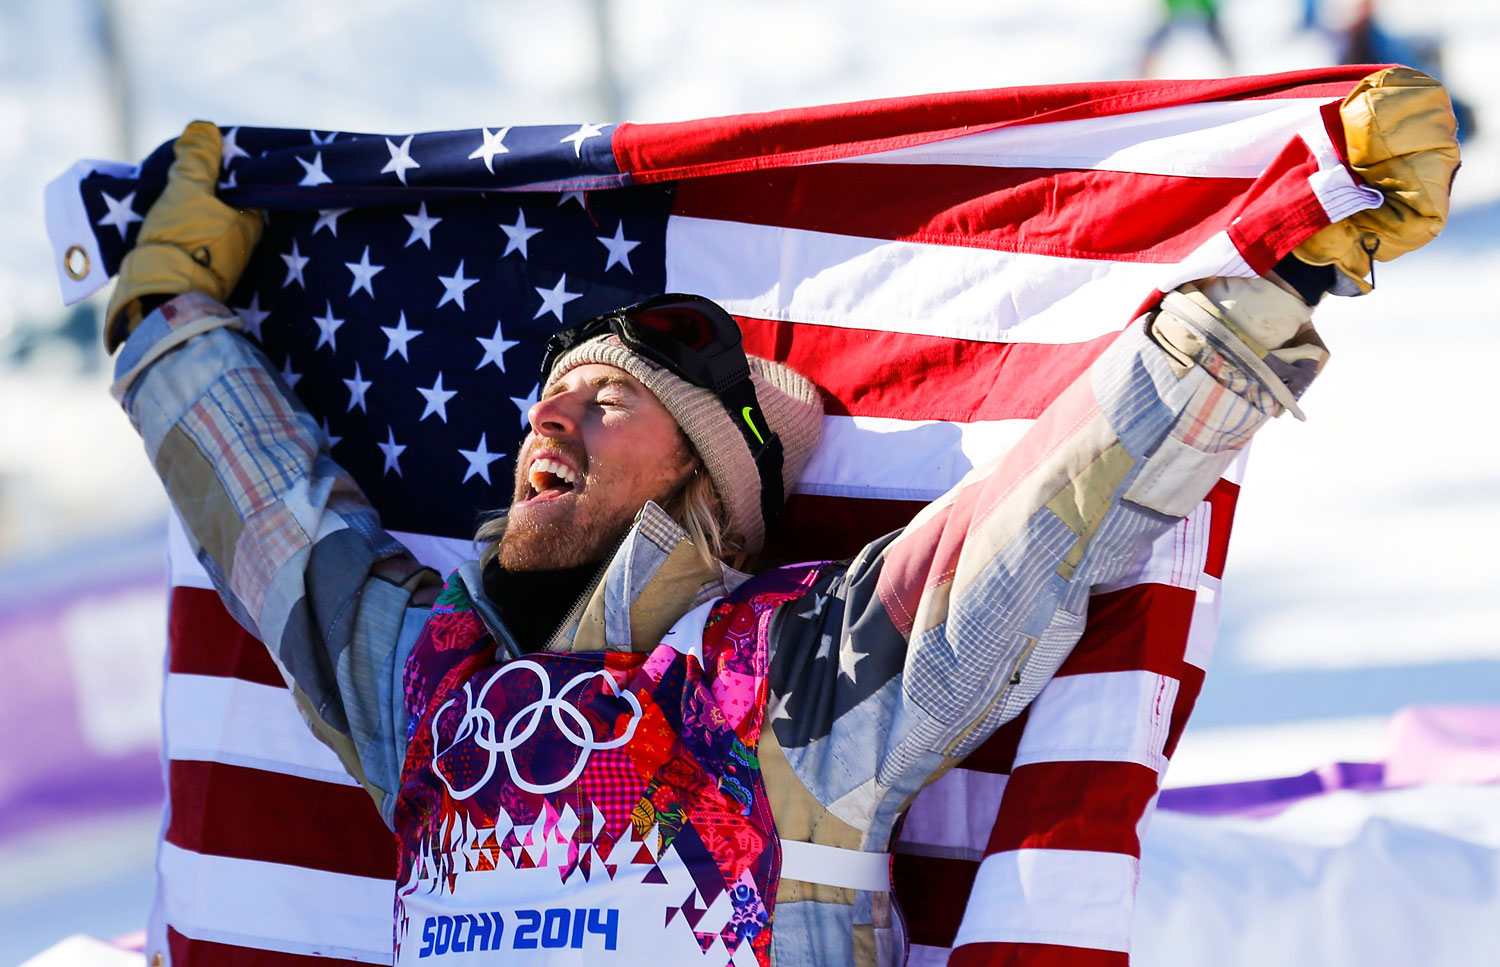 Winner Sage Kotsenburg of the U.S. celebrates after the men's snowboard slopestyle final competition at the 2014 Sochi Olympic Games in Rosa Khutor, Feb. 8, 2014.